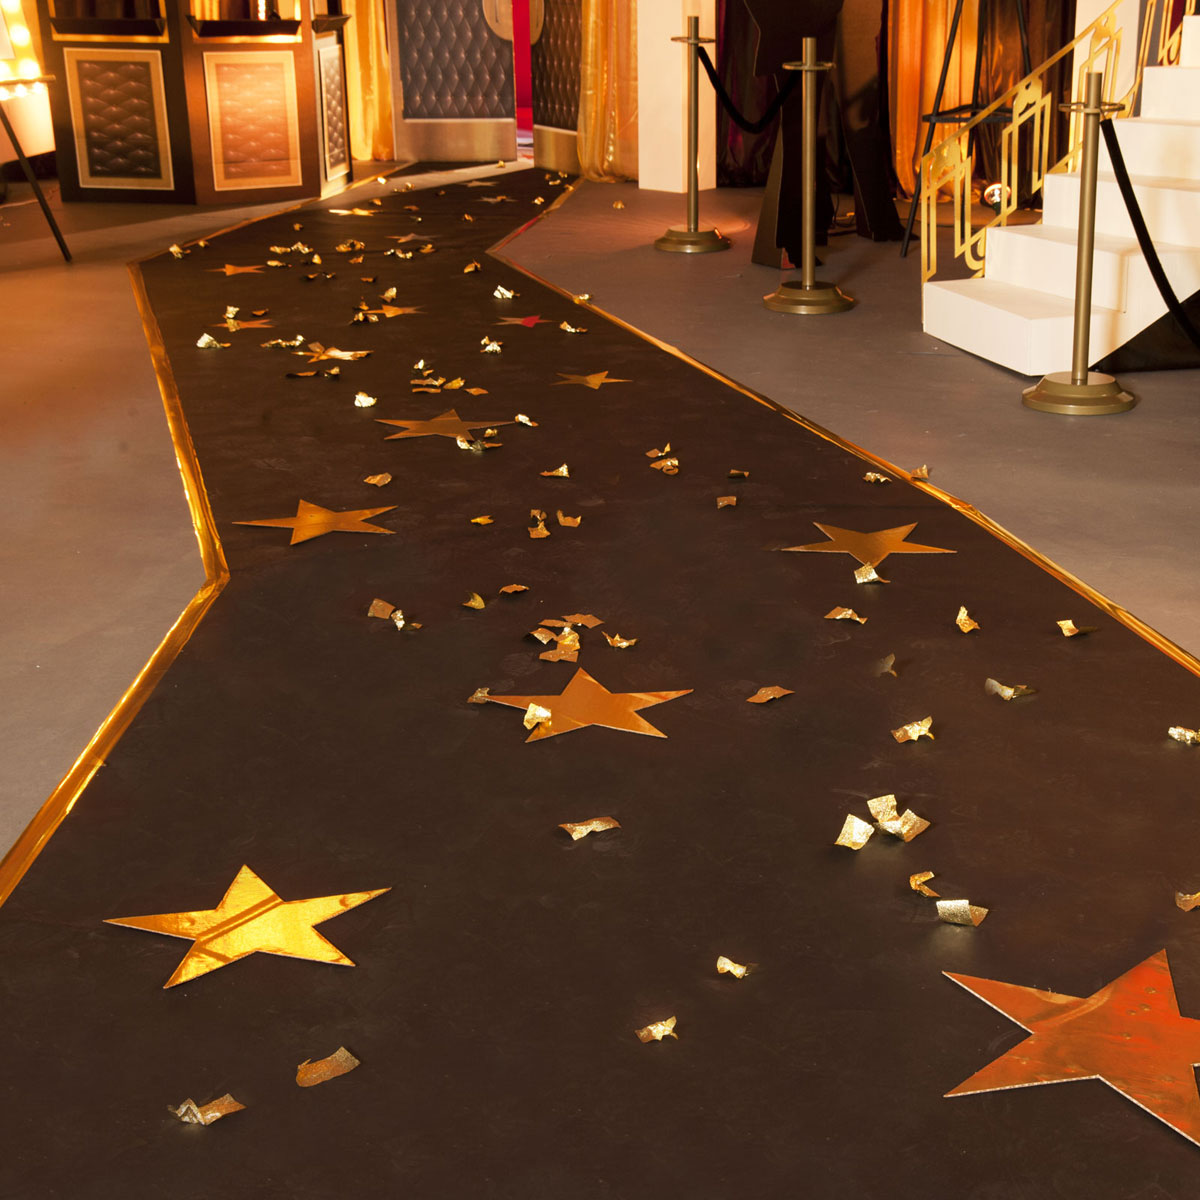 Glamorous Star-studded Pathway Kit